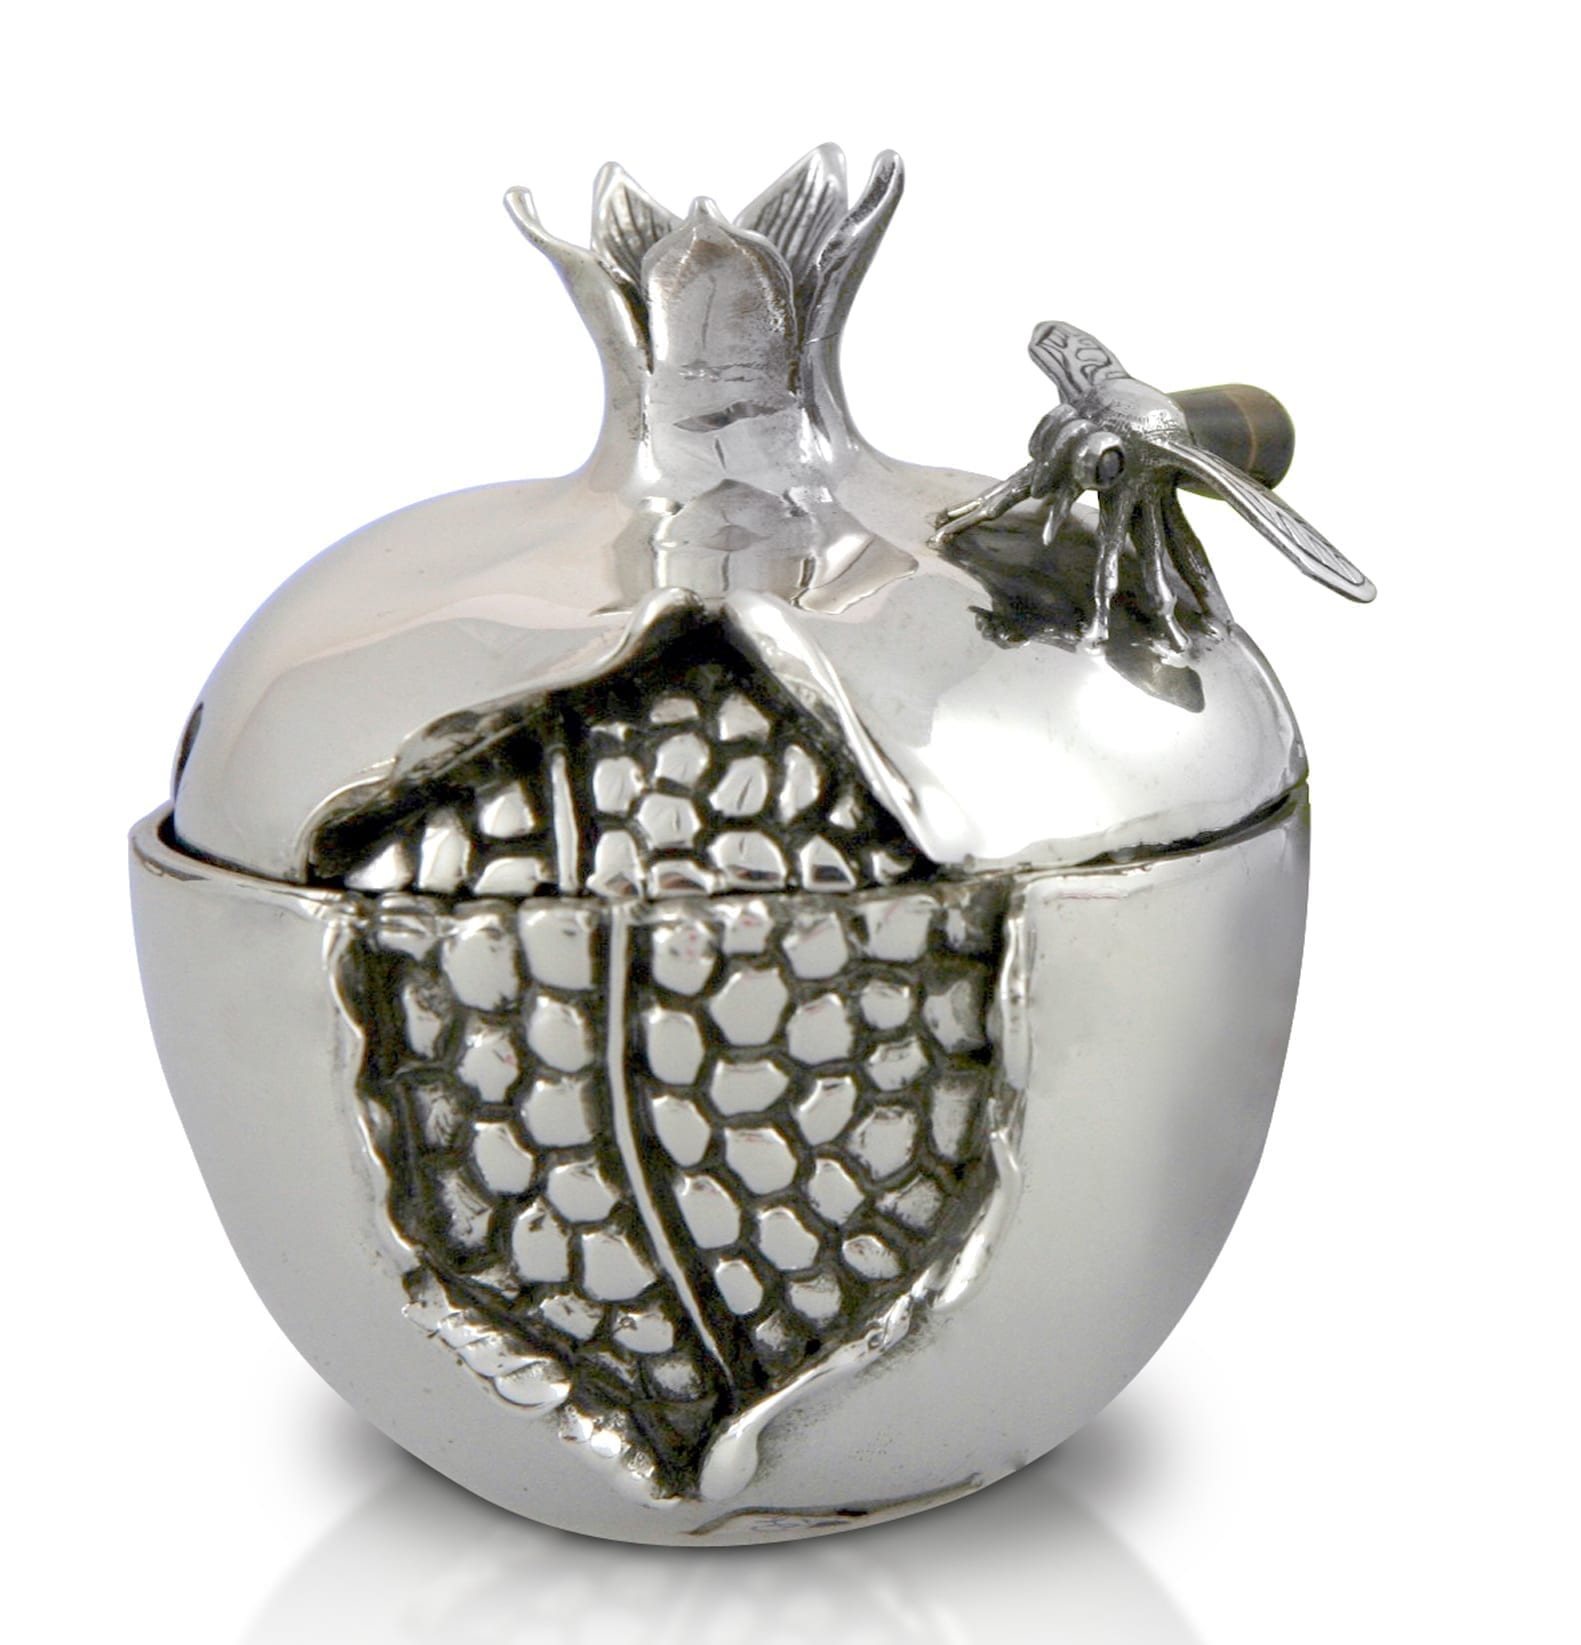 sterling silver pomegranate honey dish, rosh hashana gift, honey spoon, judaica made in israel